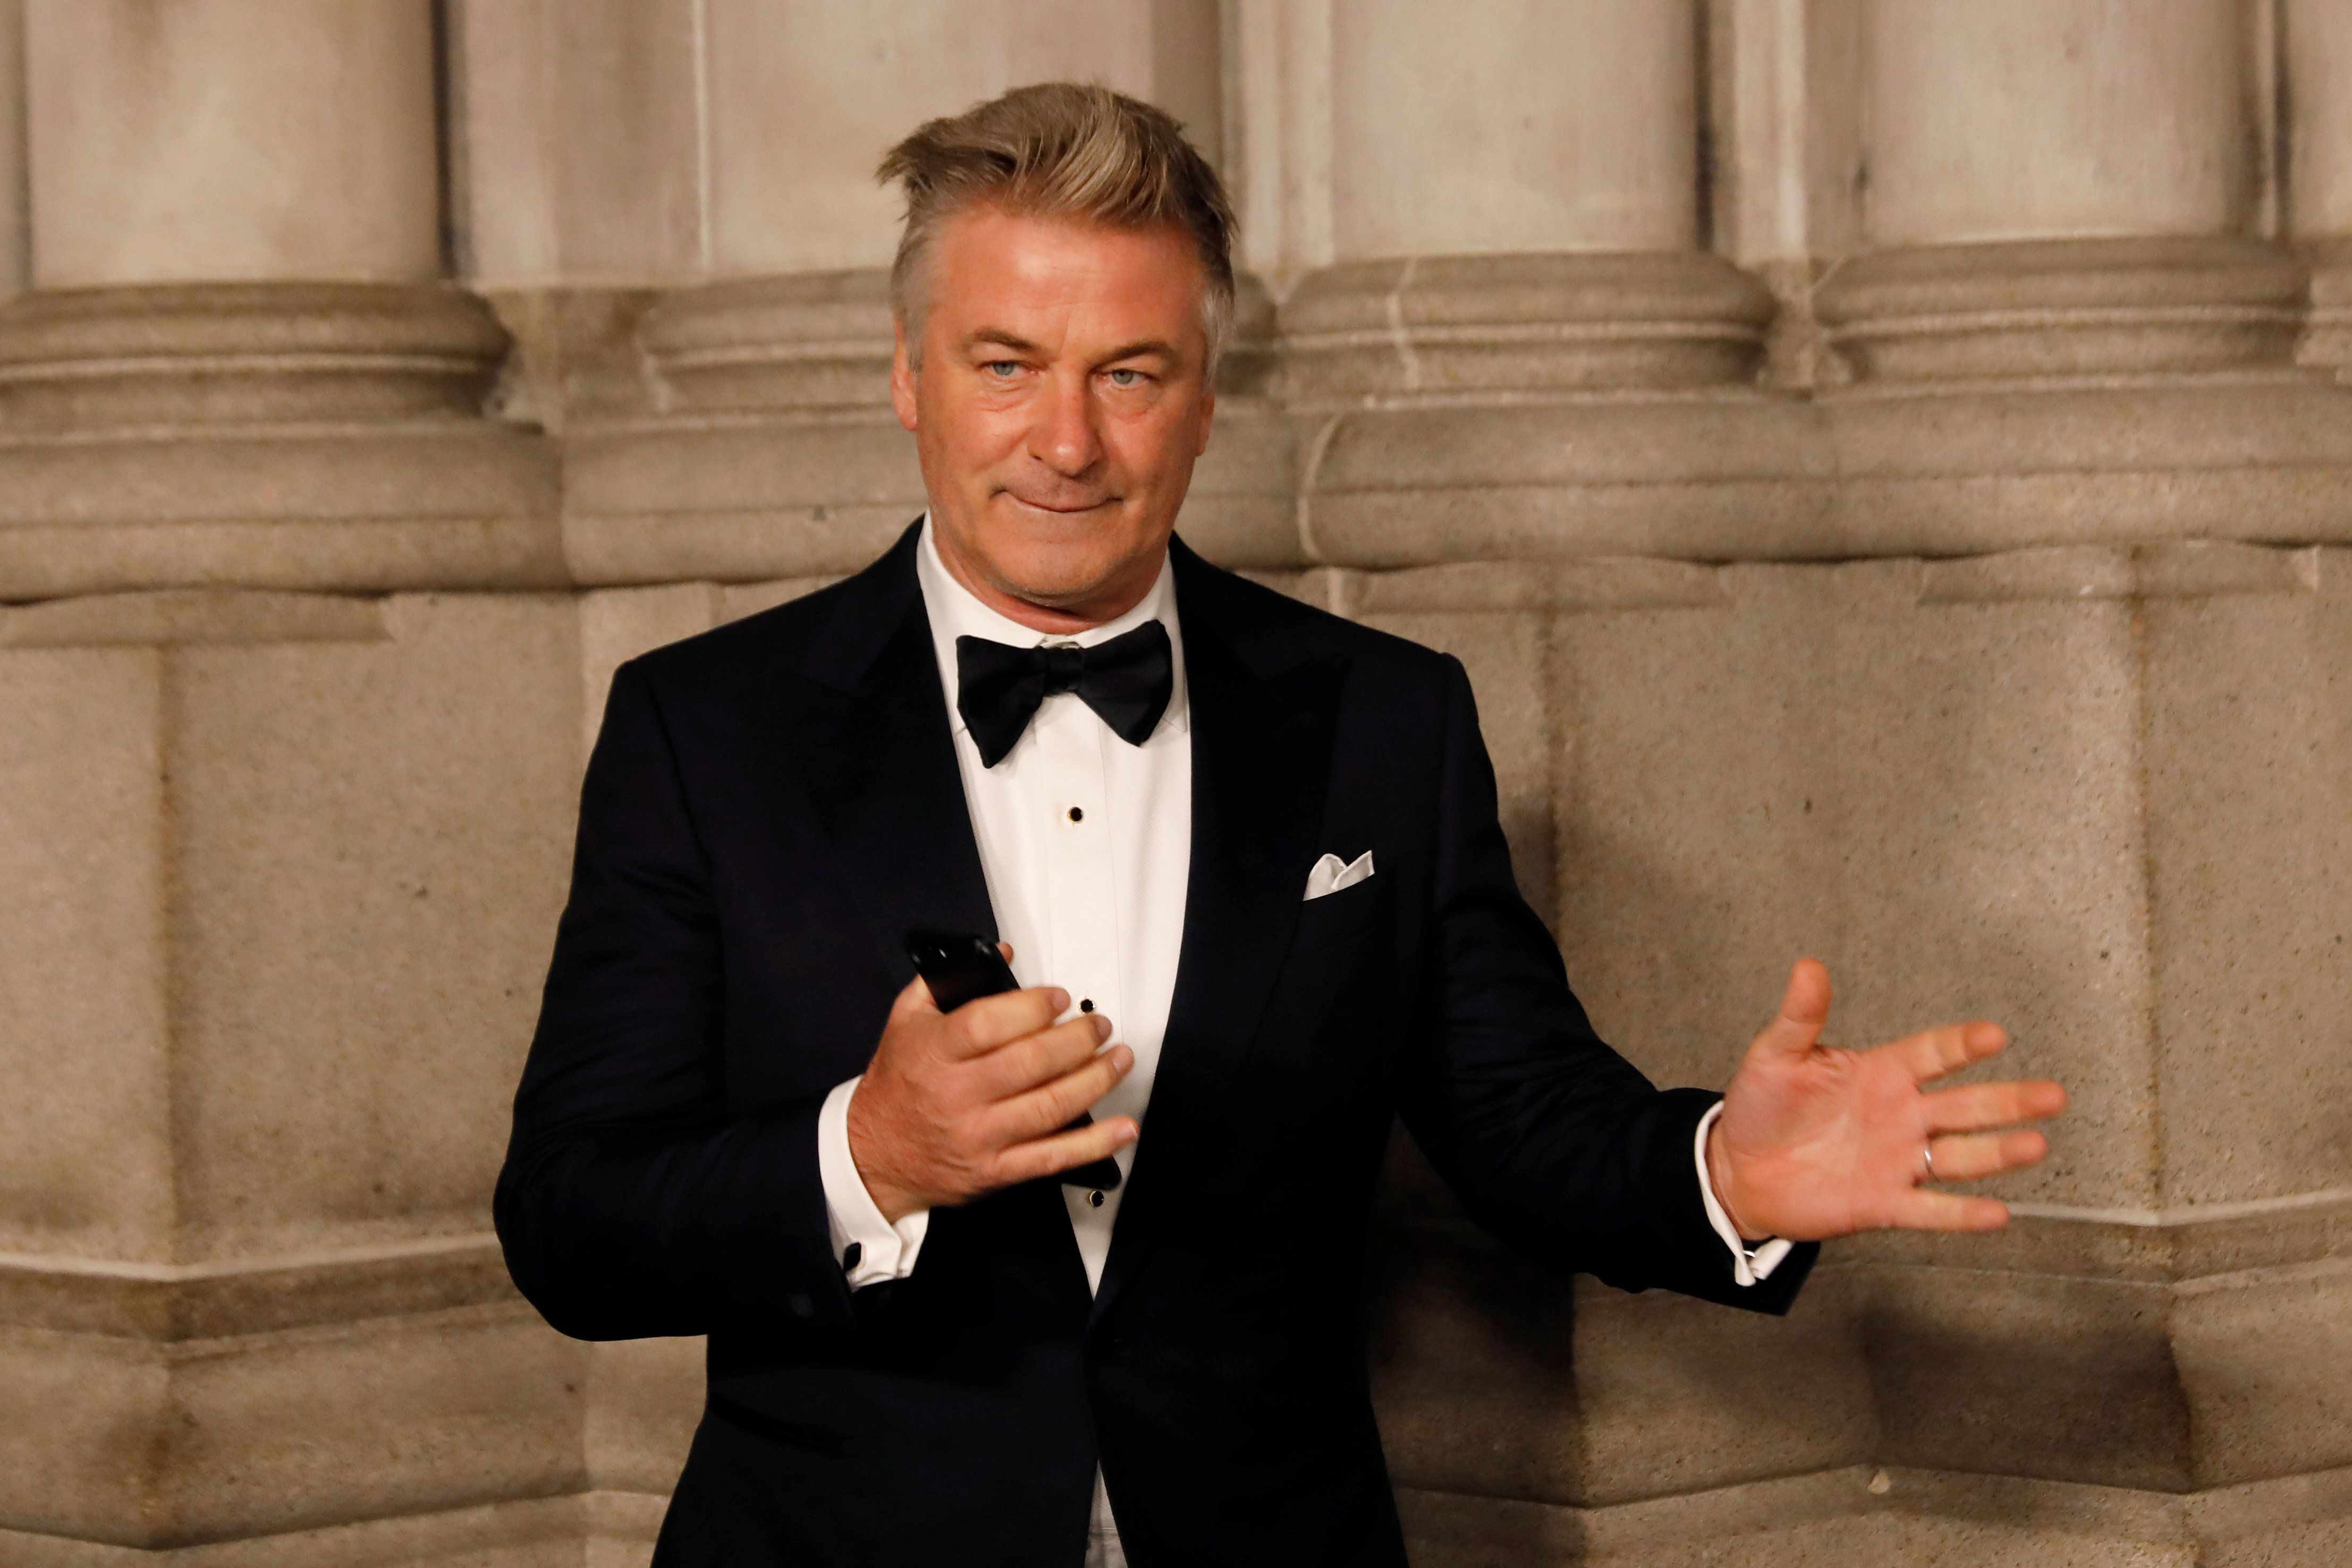 Actor Alec Baldwin gestures before walking on the red carpet during the commemoration of the Elton John AIDS Foundation 25th year fall gala at the Cathedral of St. John the Divine in New York City, in New York, U.S. November 7, 2017. REUTERS/Shannon Stapleton